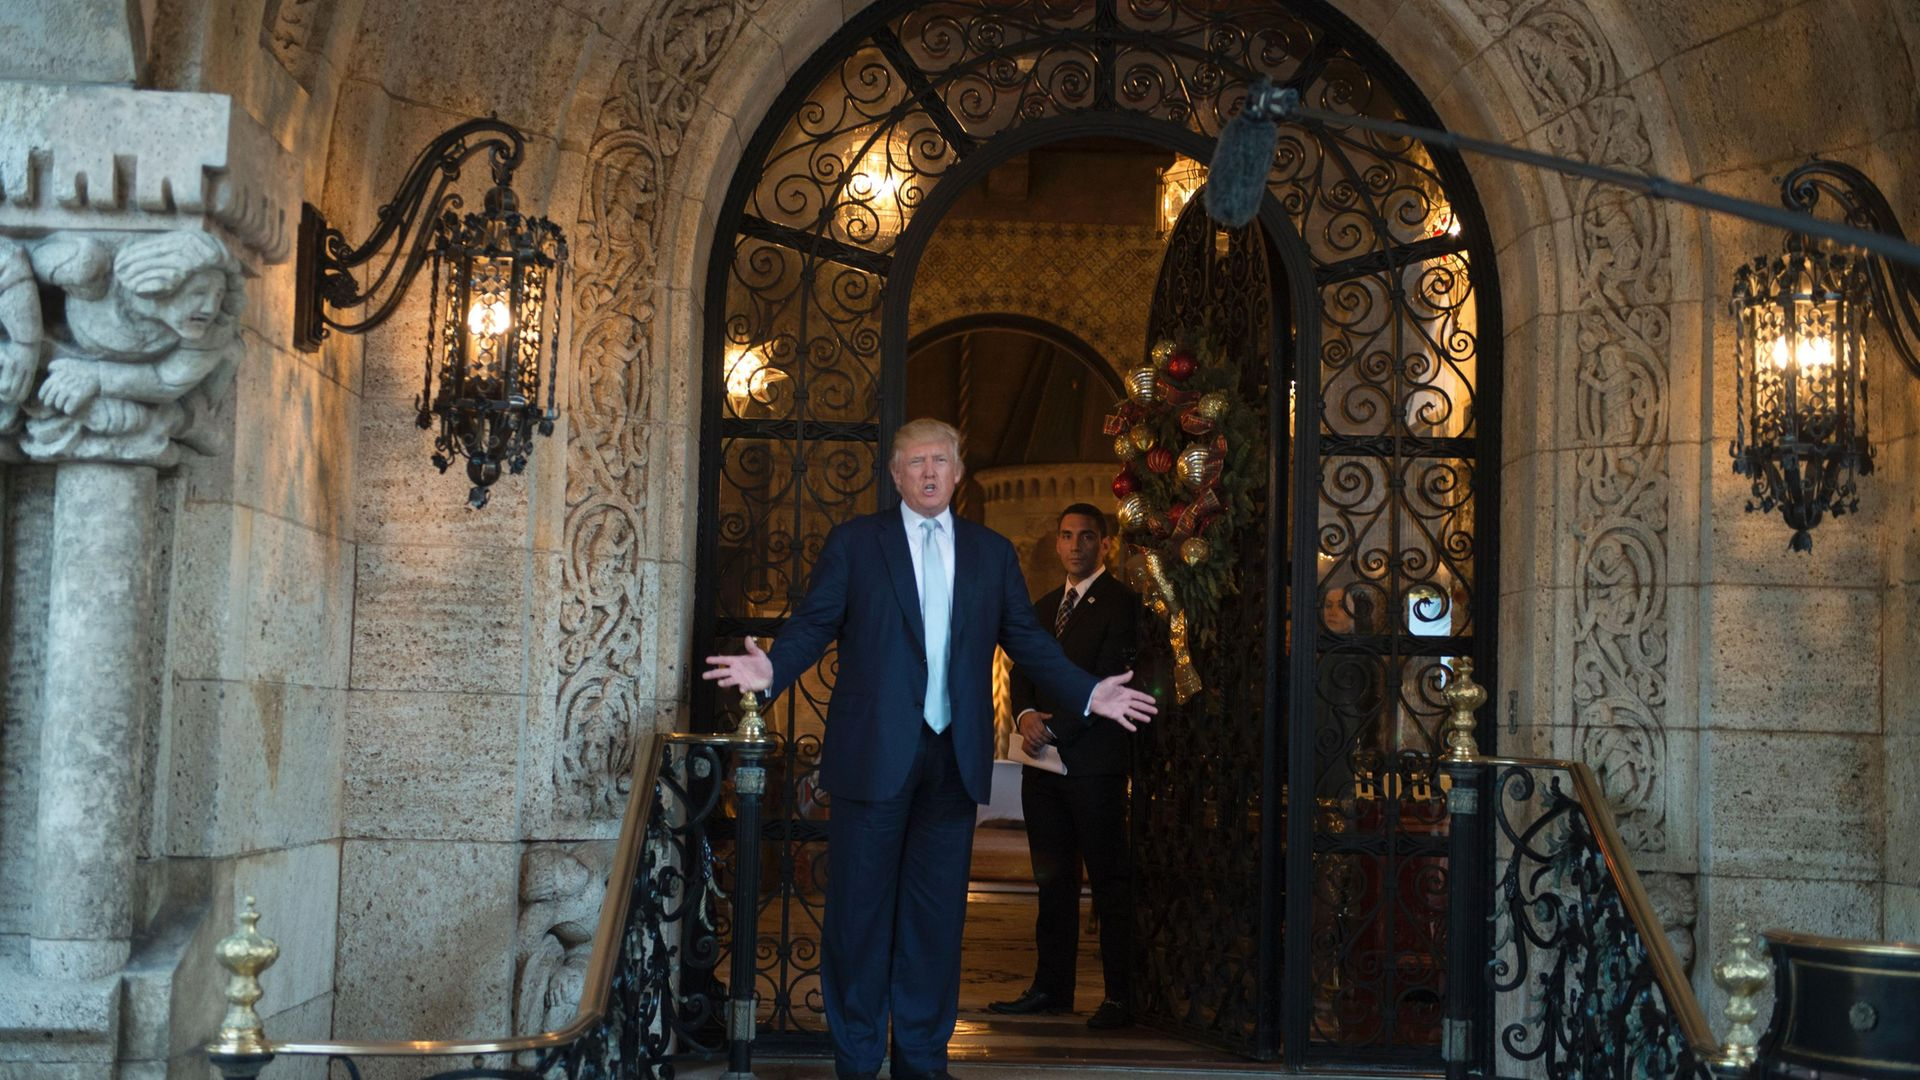 Donald Trump at Mar-a-Lago in Palm Beach, Florida, in 2016 - Credit: AFP via Getty Images